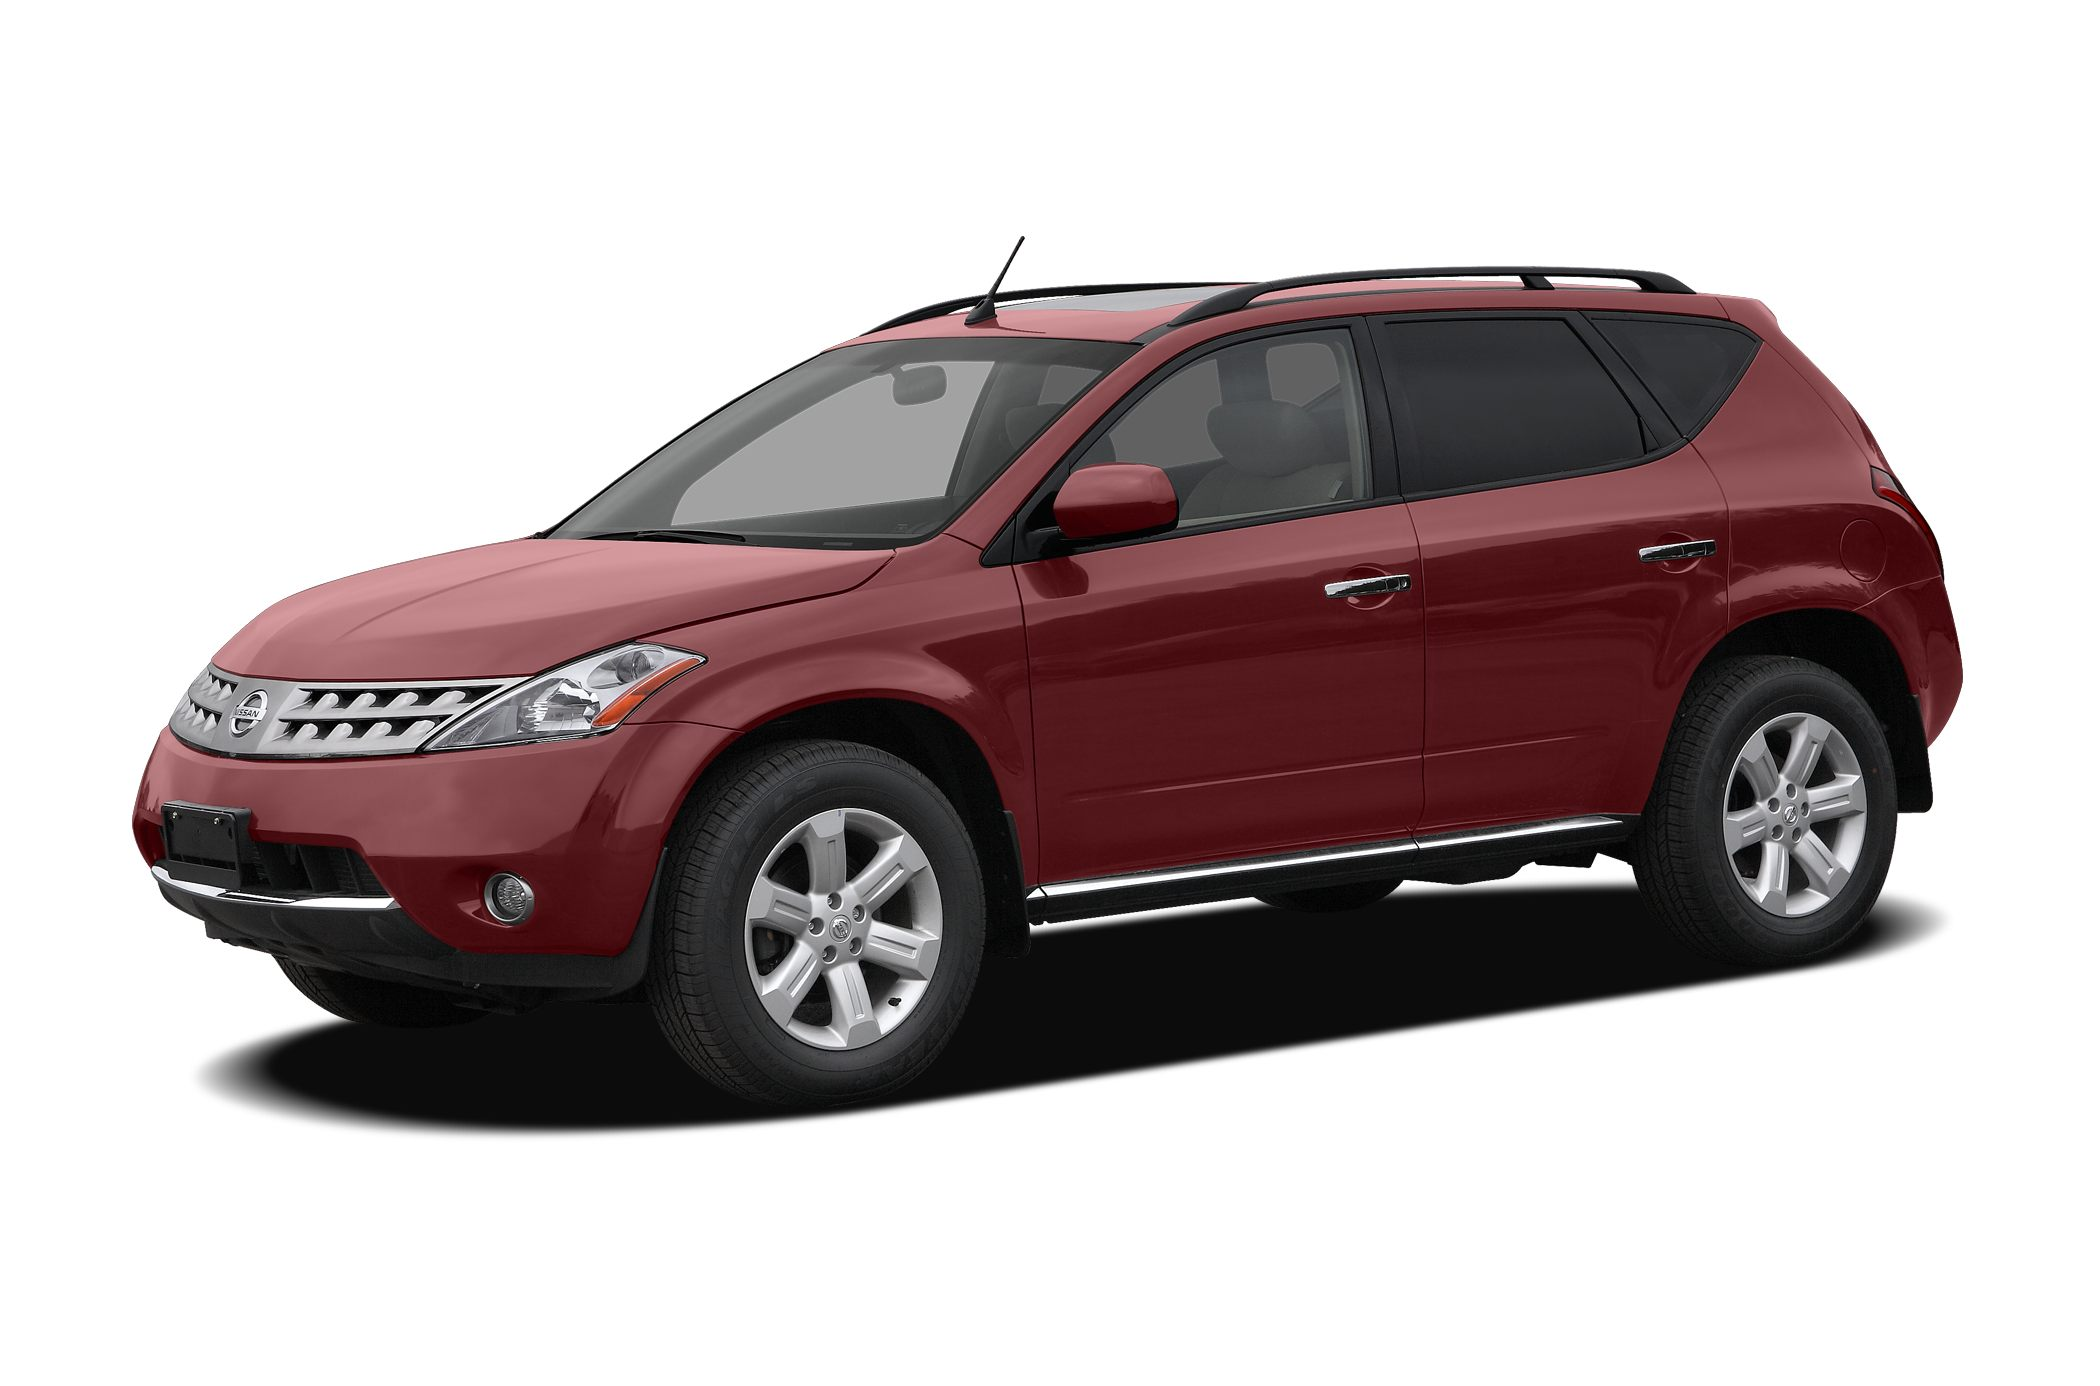 2006 Nissan Murano SL SUV for sale in Tewksbury for $8,995 with 130,540 miles.